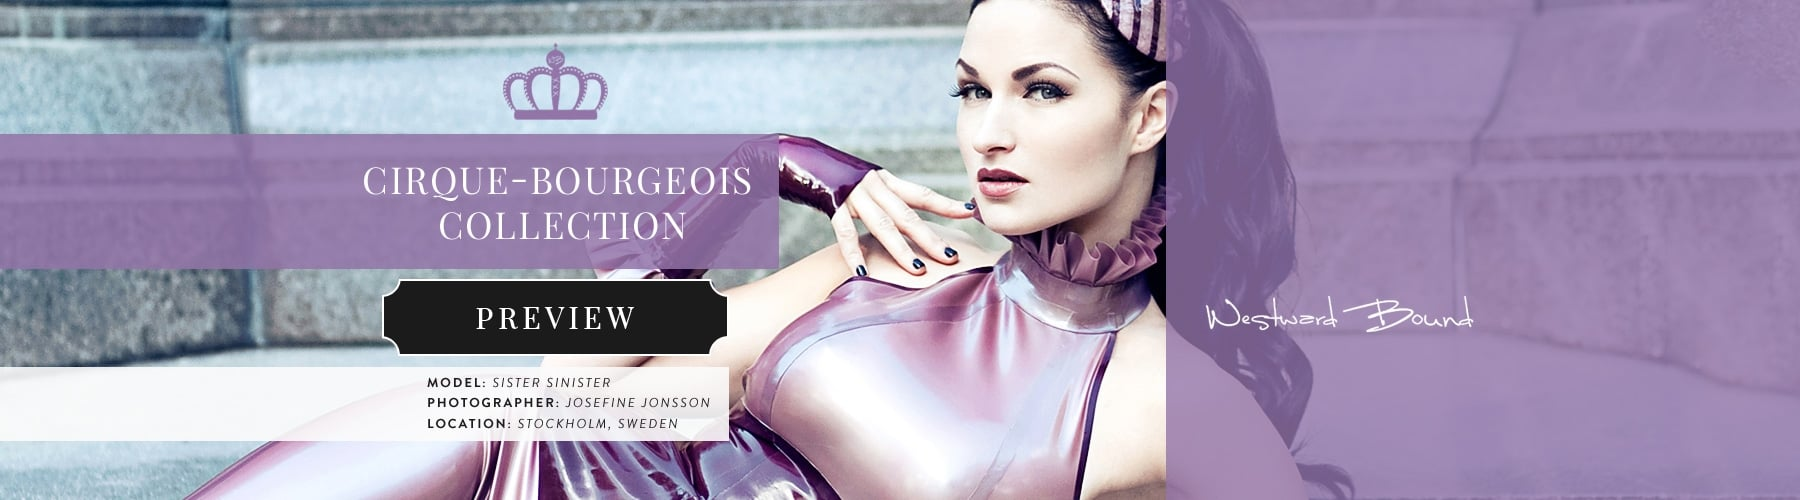 Cirque-Bourgeois Latex Rubber Clothing Collection.